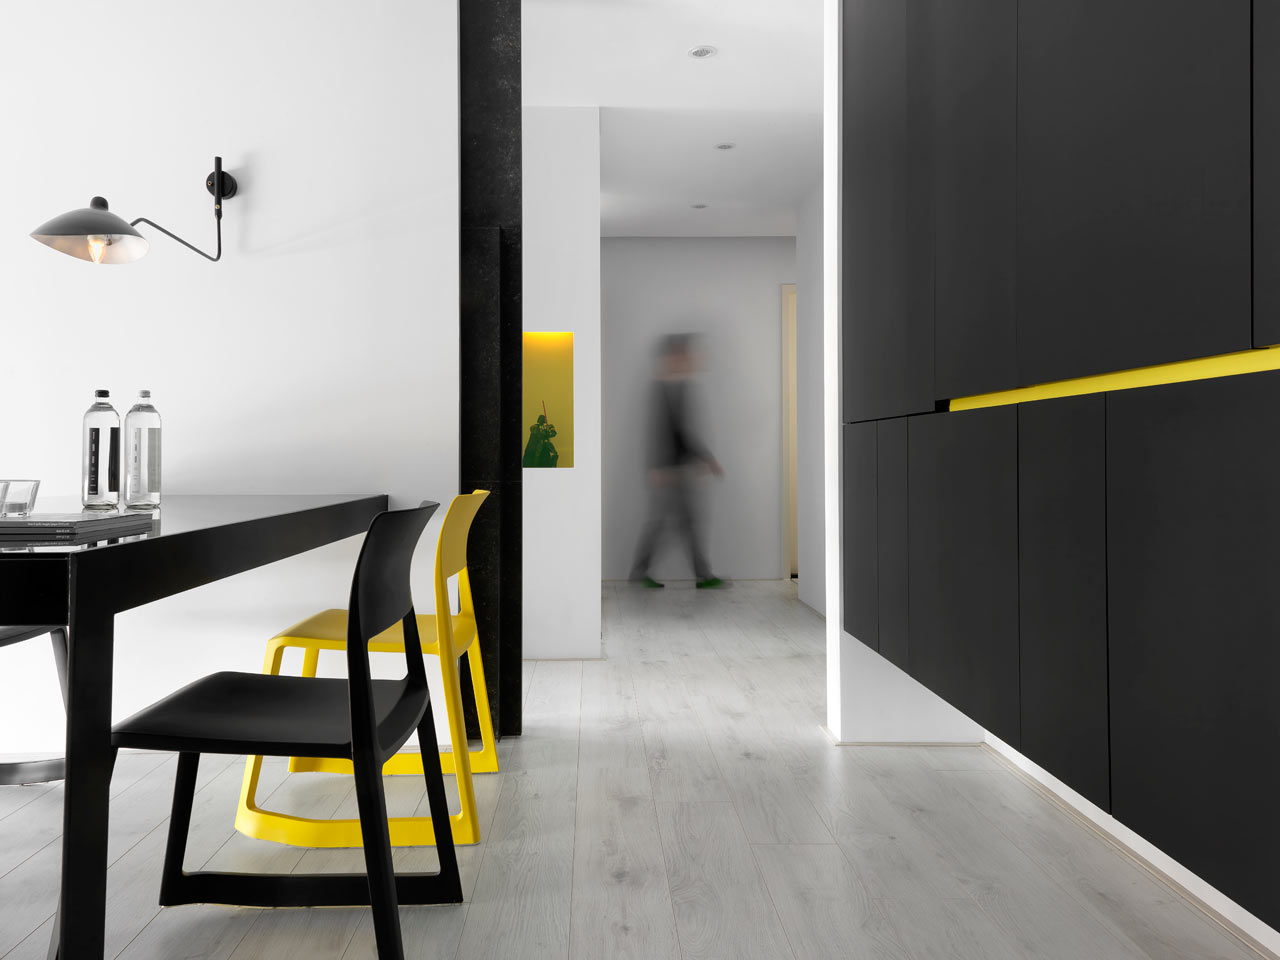 taichung h residence5 Modern Apartment with Bright Yellow Accents